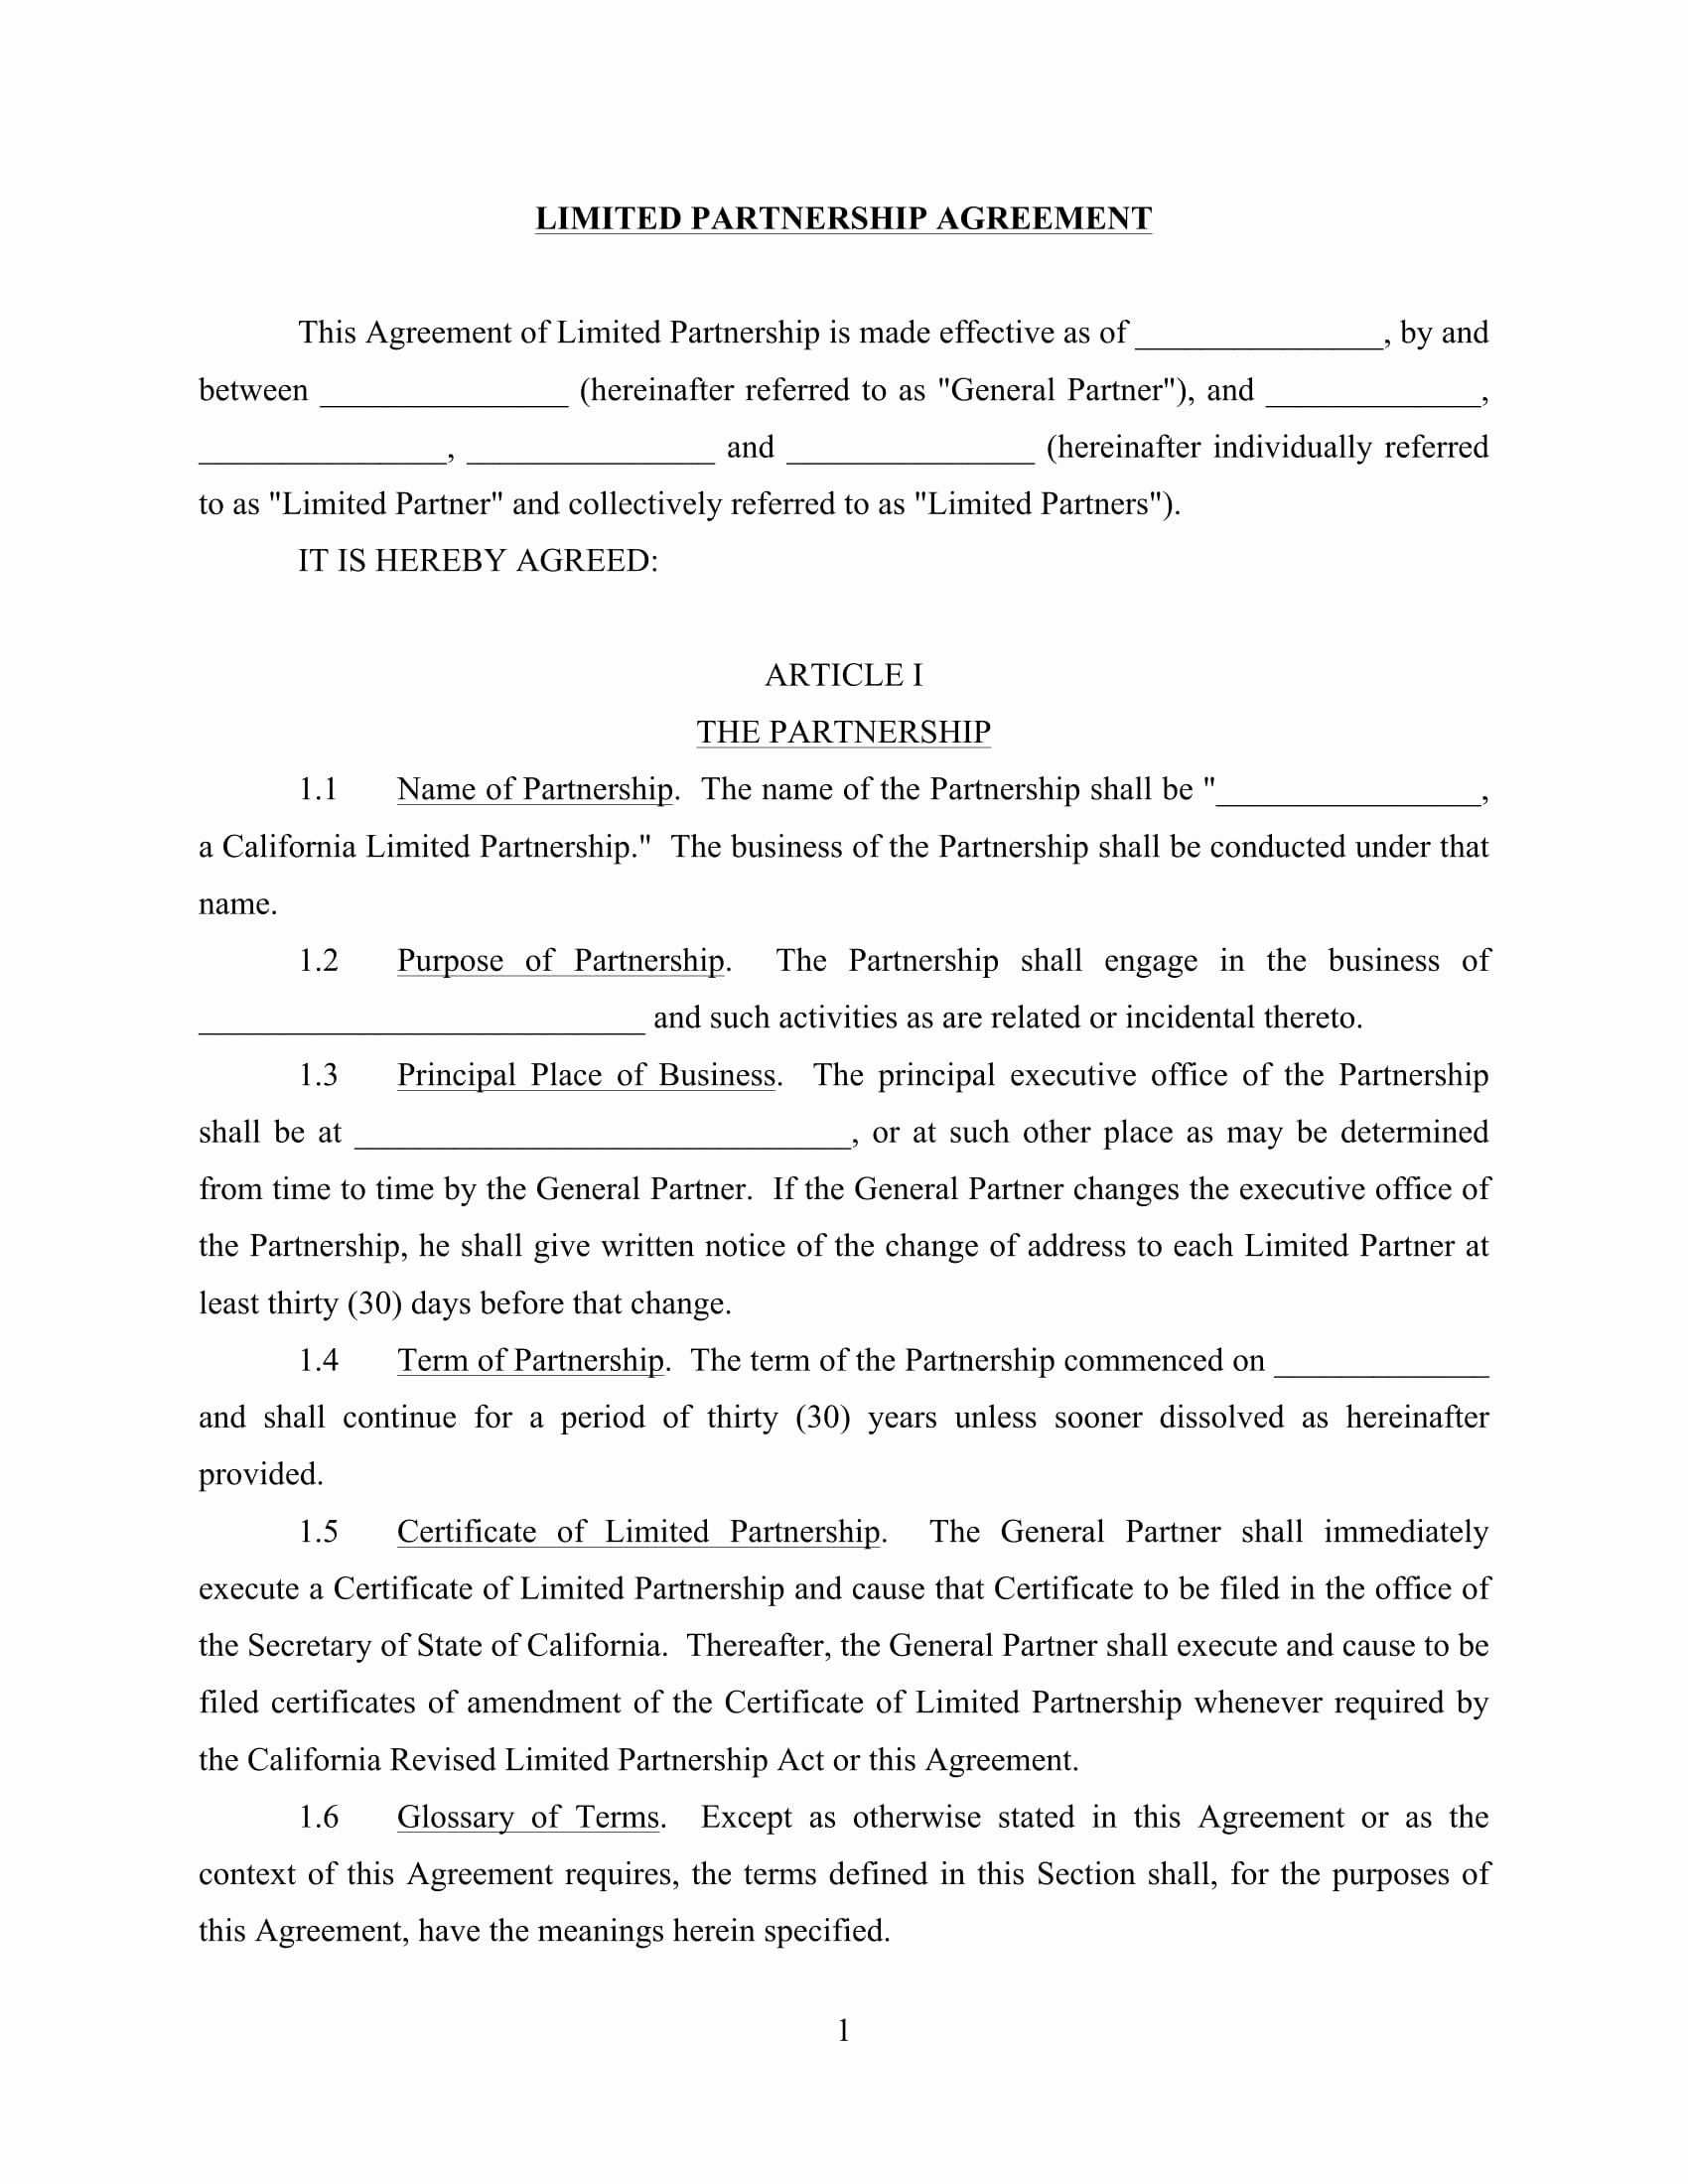 Limited Partnership Agreement Template Unique 4 Limited Partnership Agreement forms Word Pdf